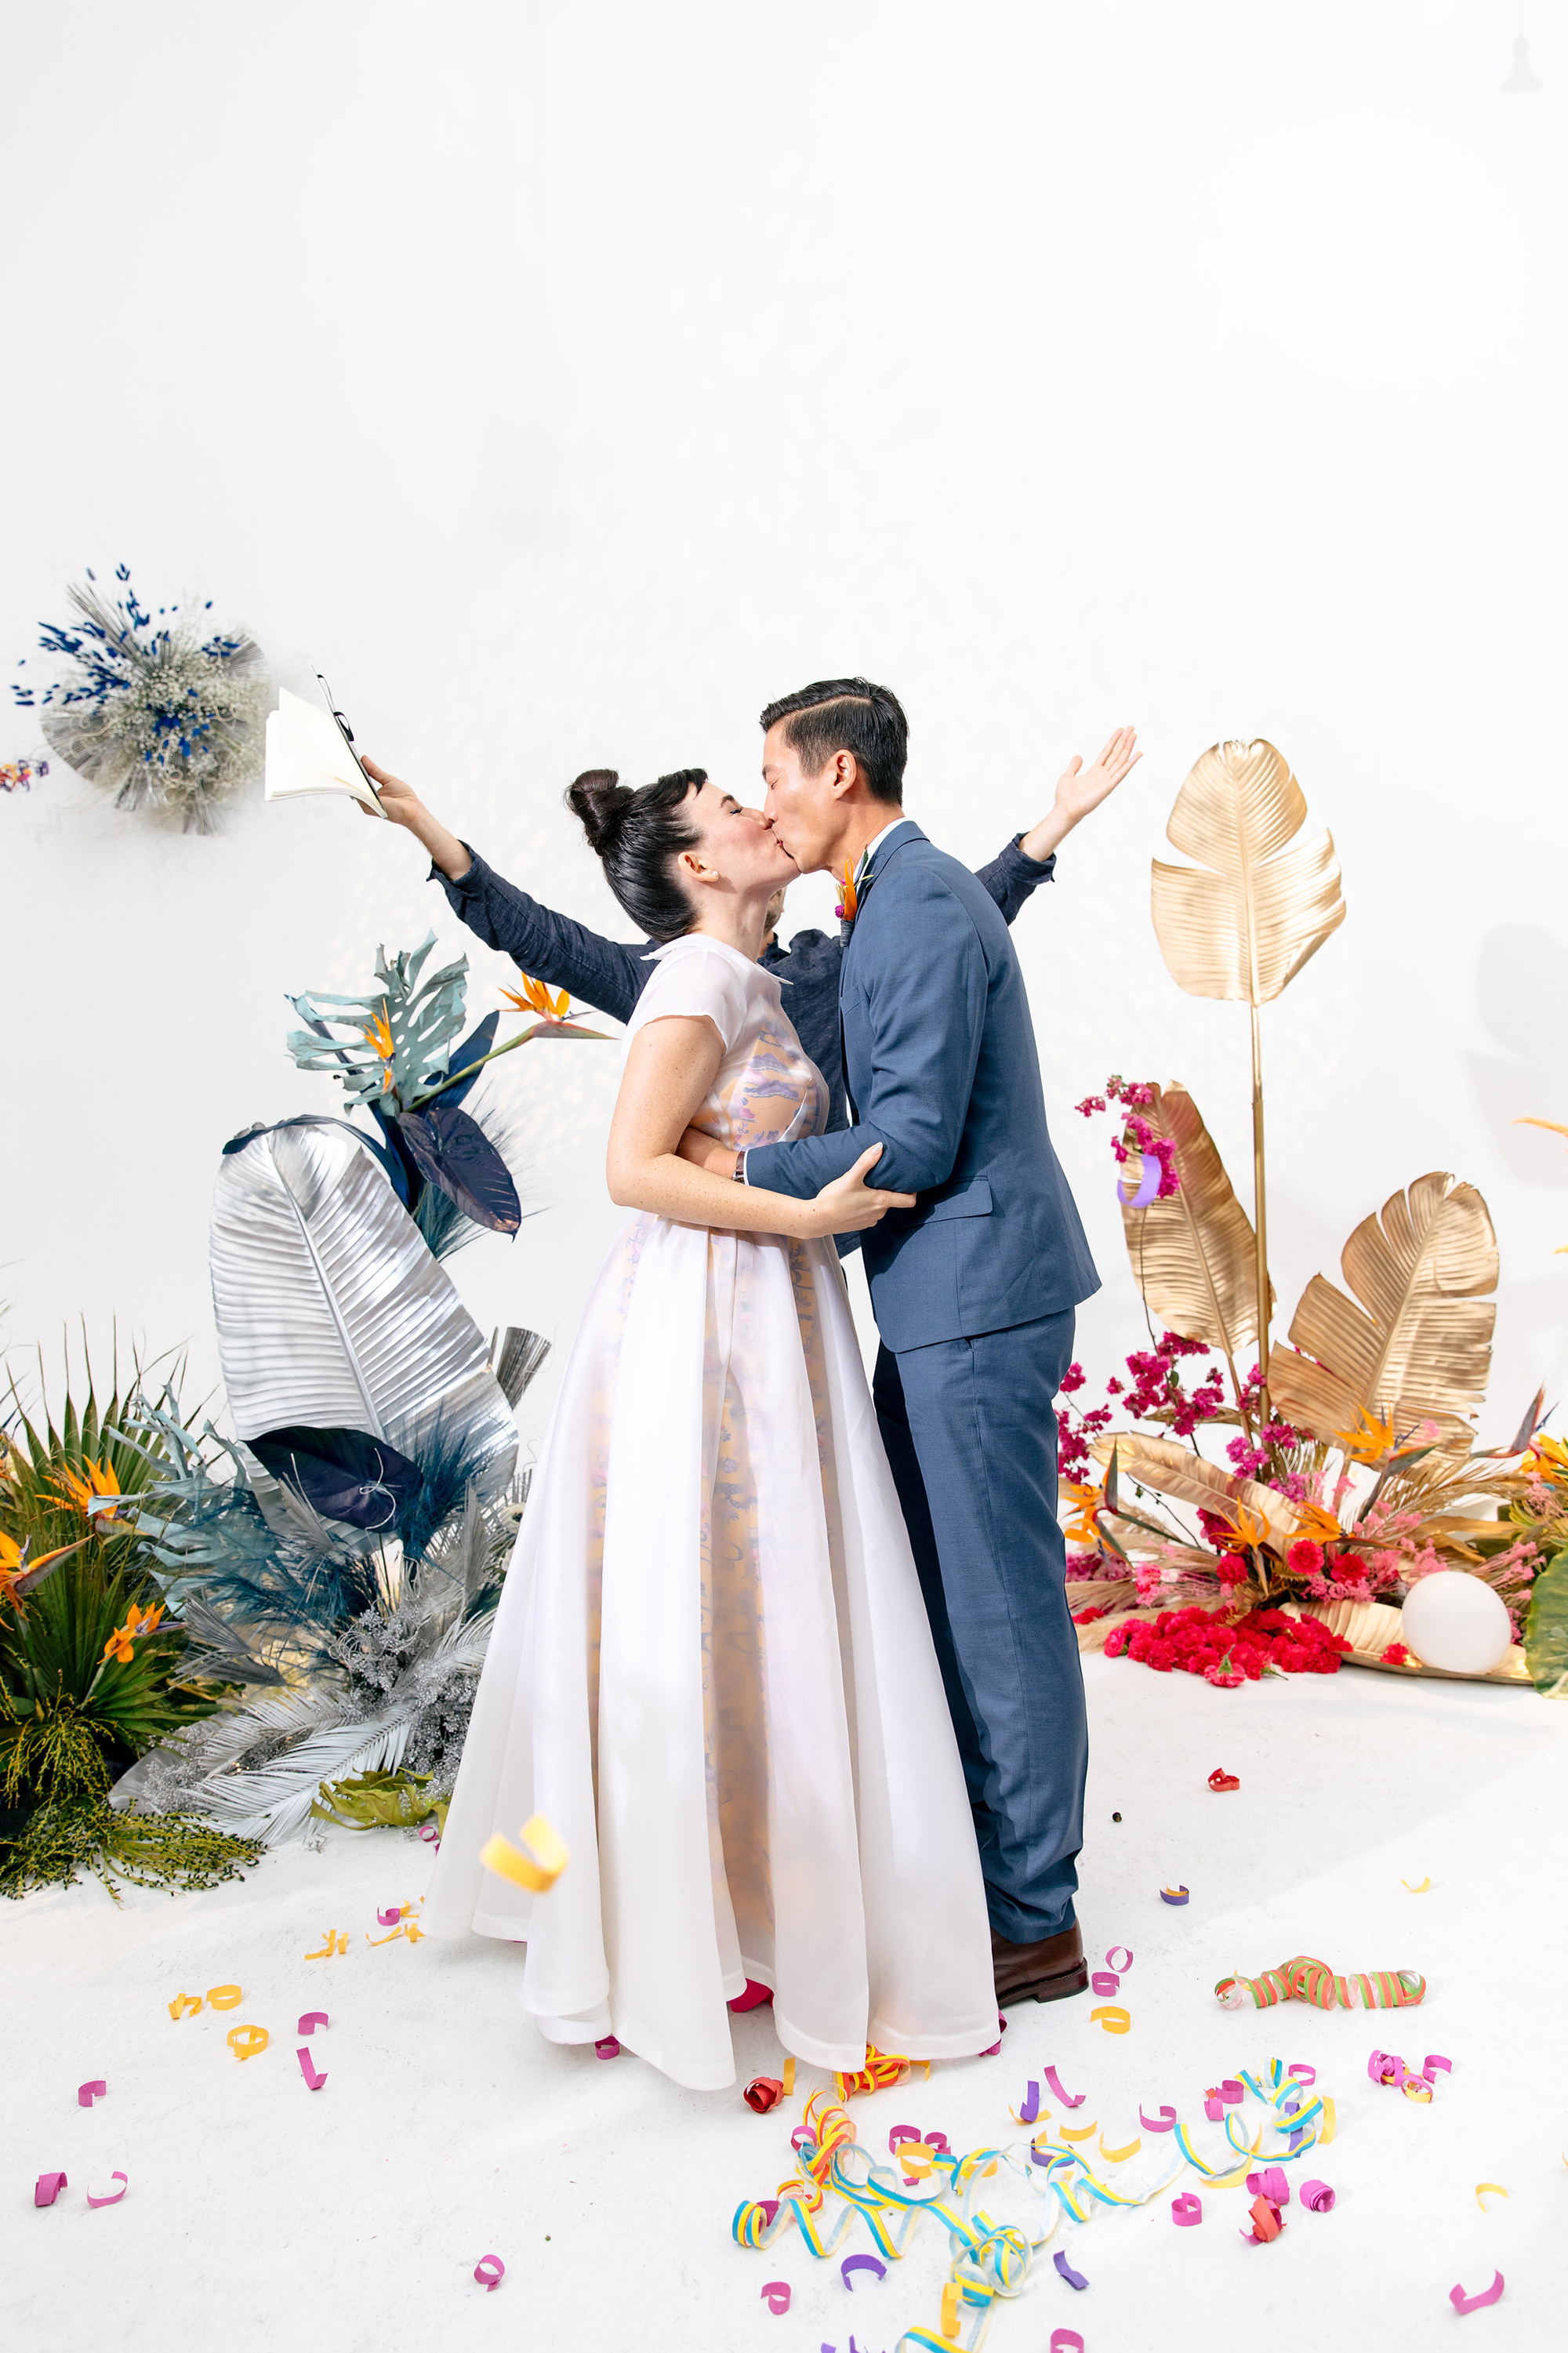 tashina huy colorful wedding ceremony kiss